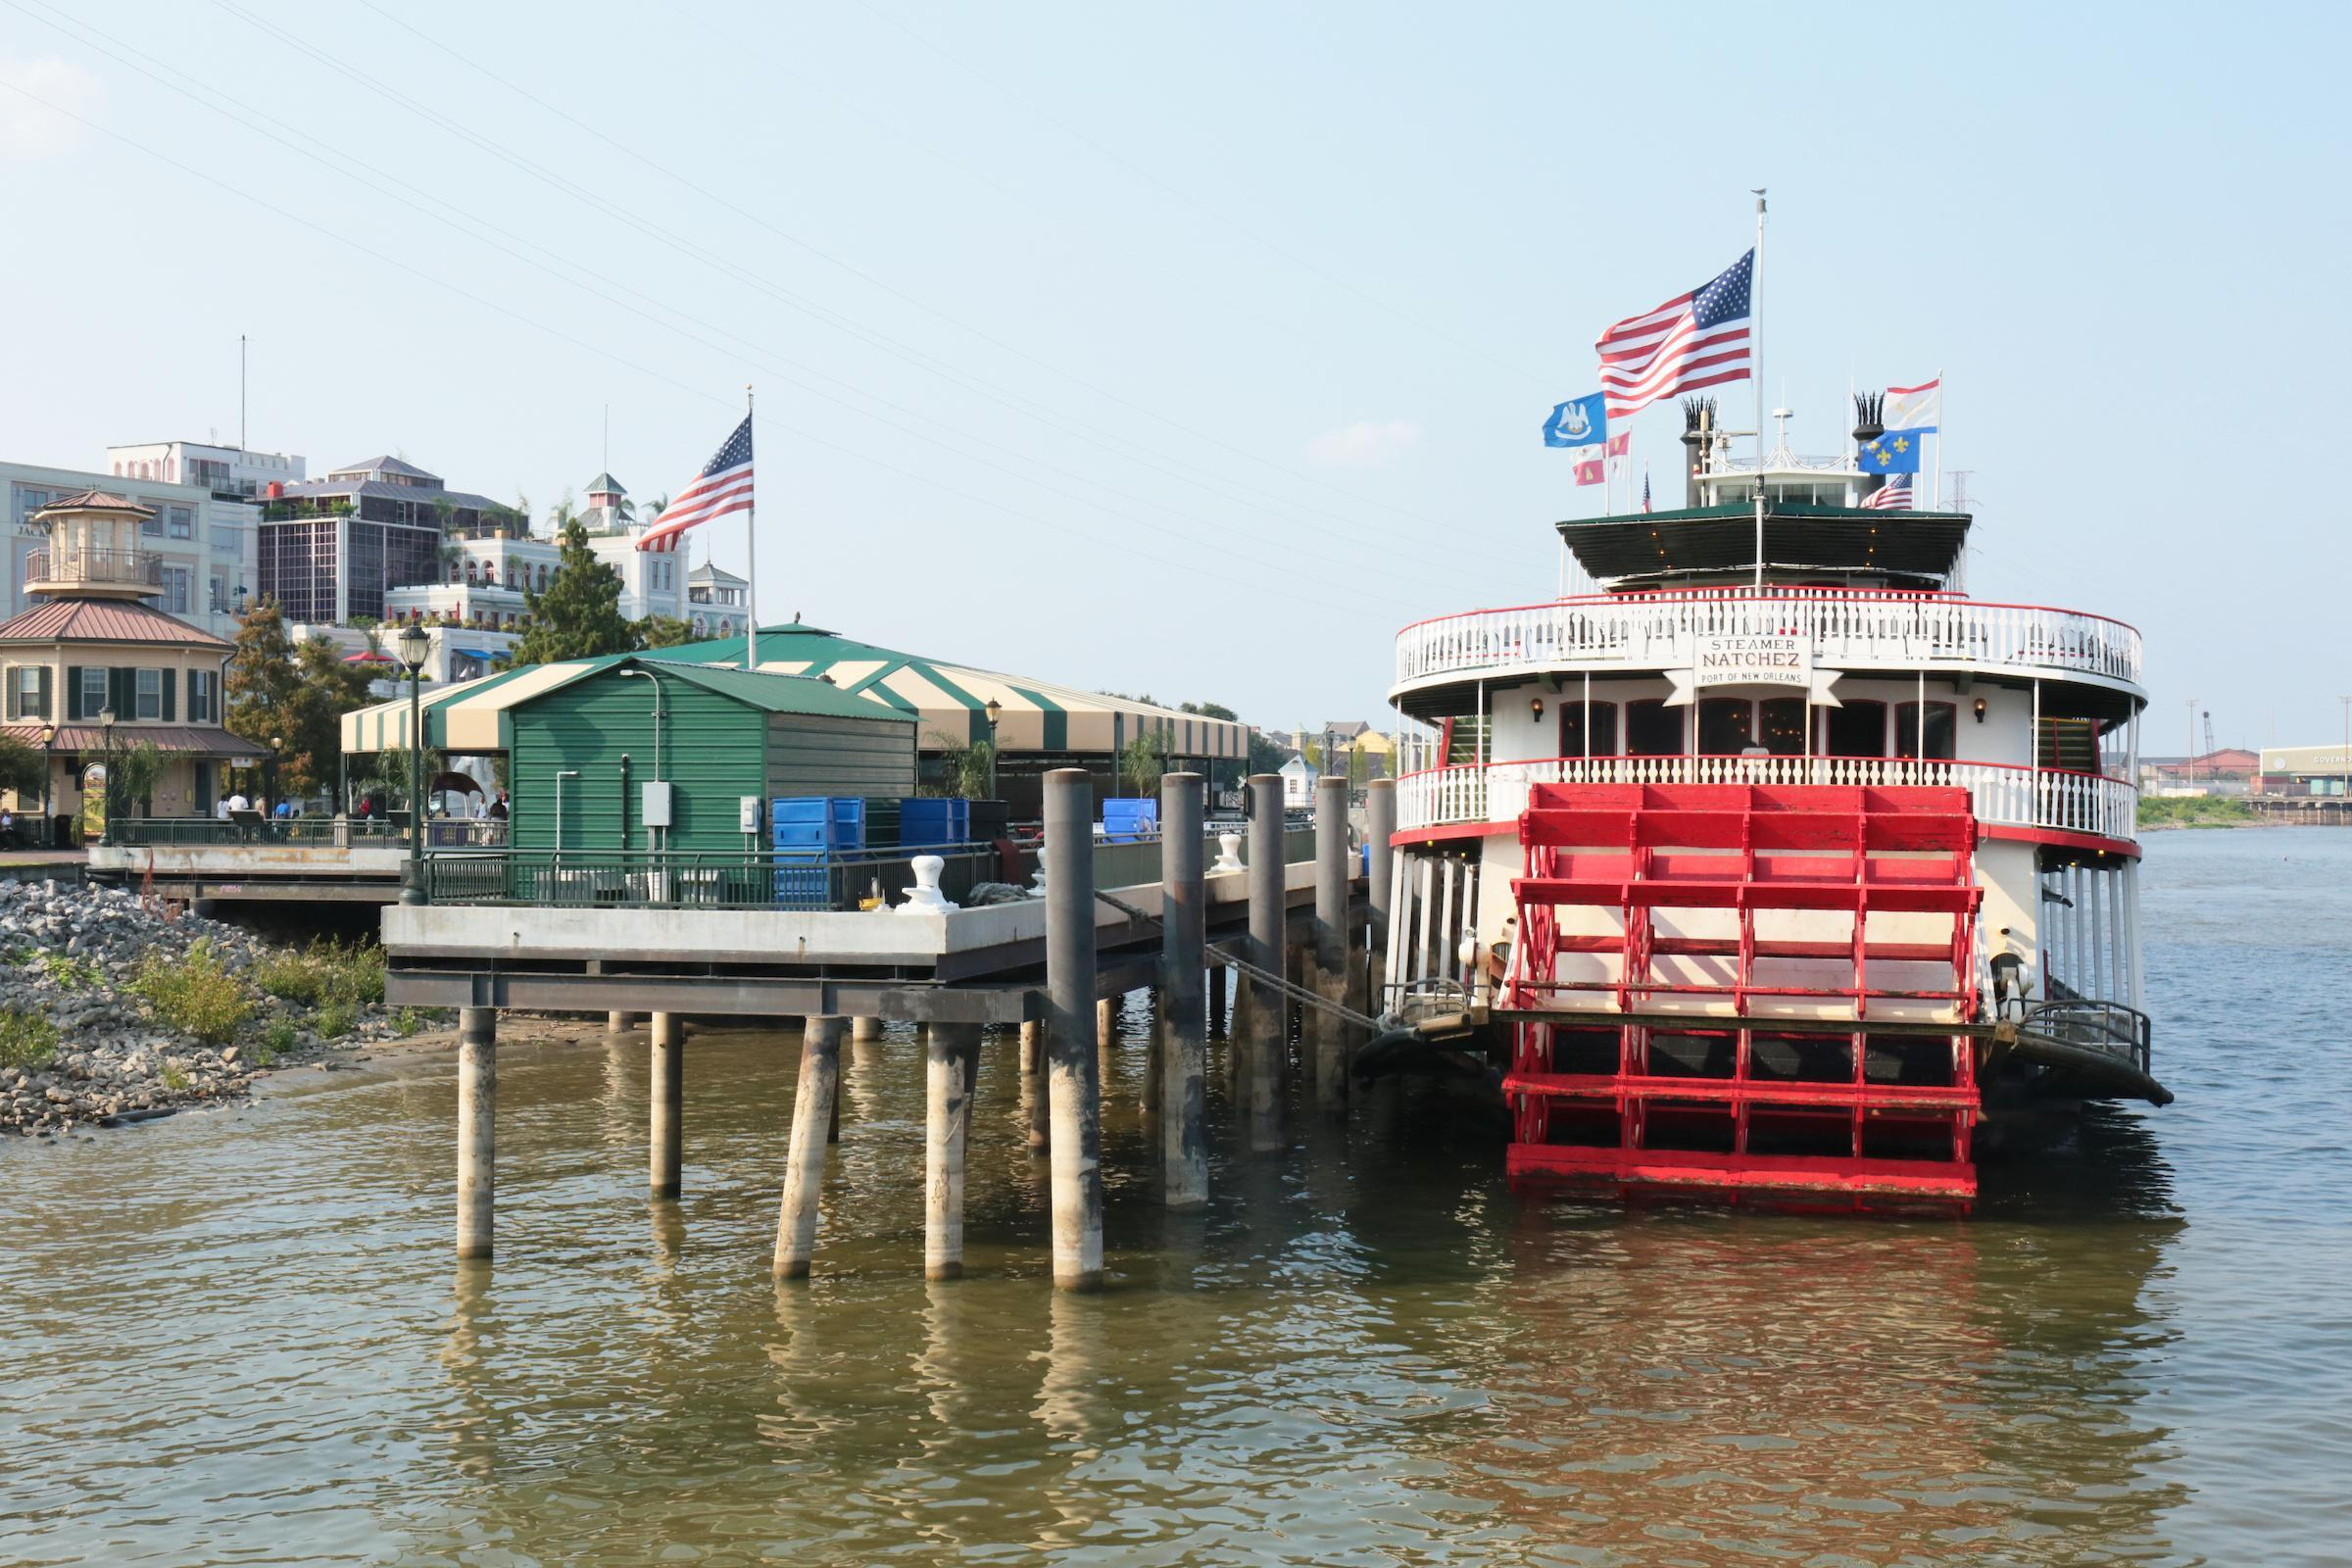 Mississippi River Cruises in New Orleans